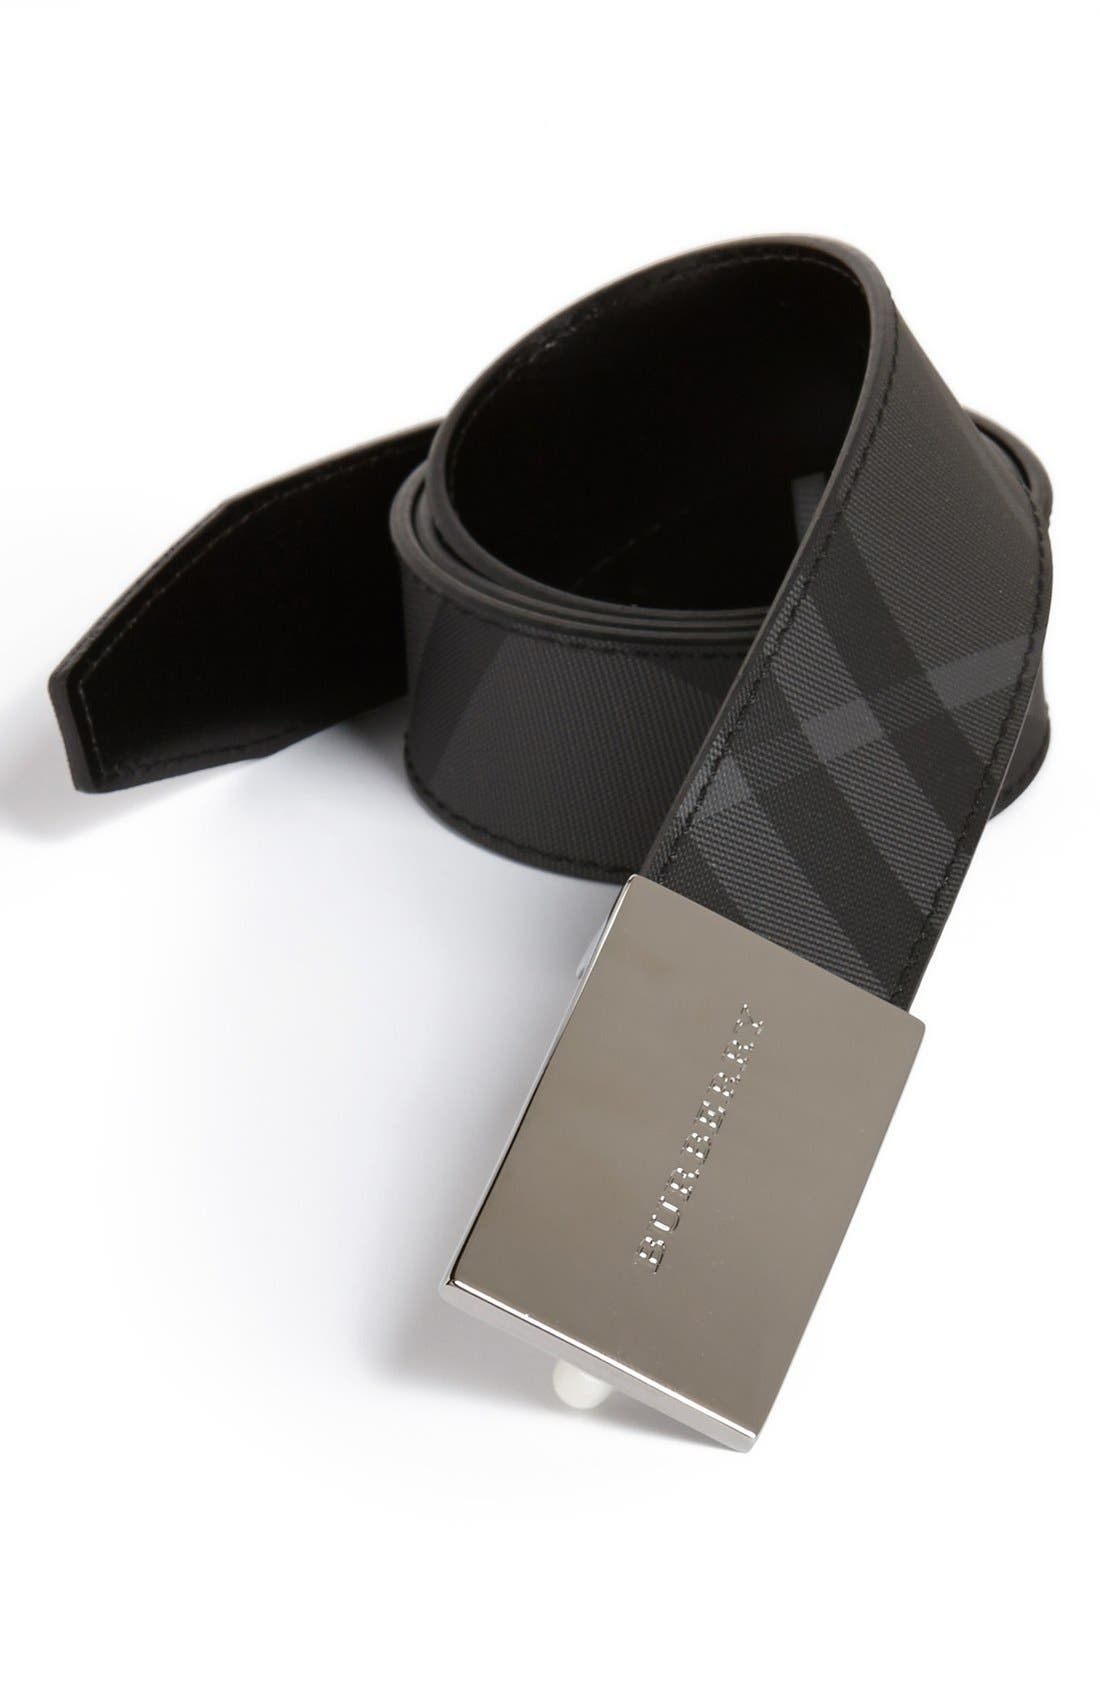 Main Image - Burberry 'Sloane' Belt